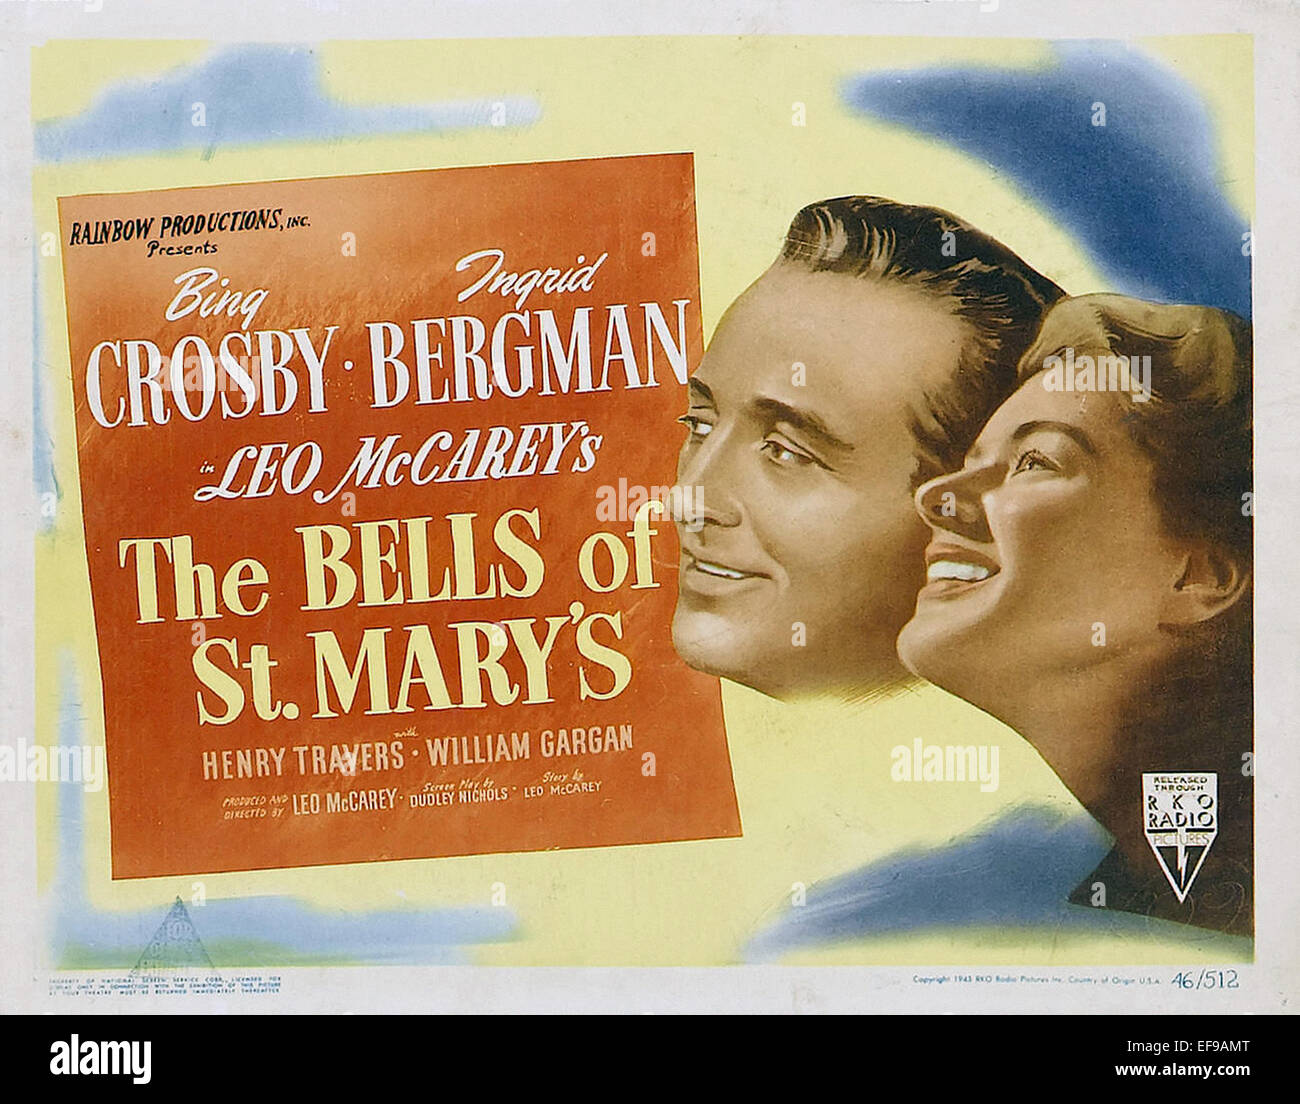 The Bells of St Mary's - Movie Poster - Stock Image